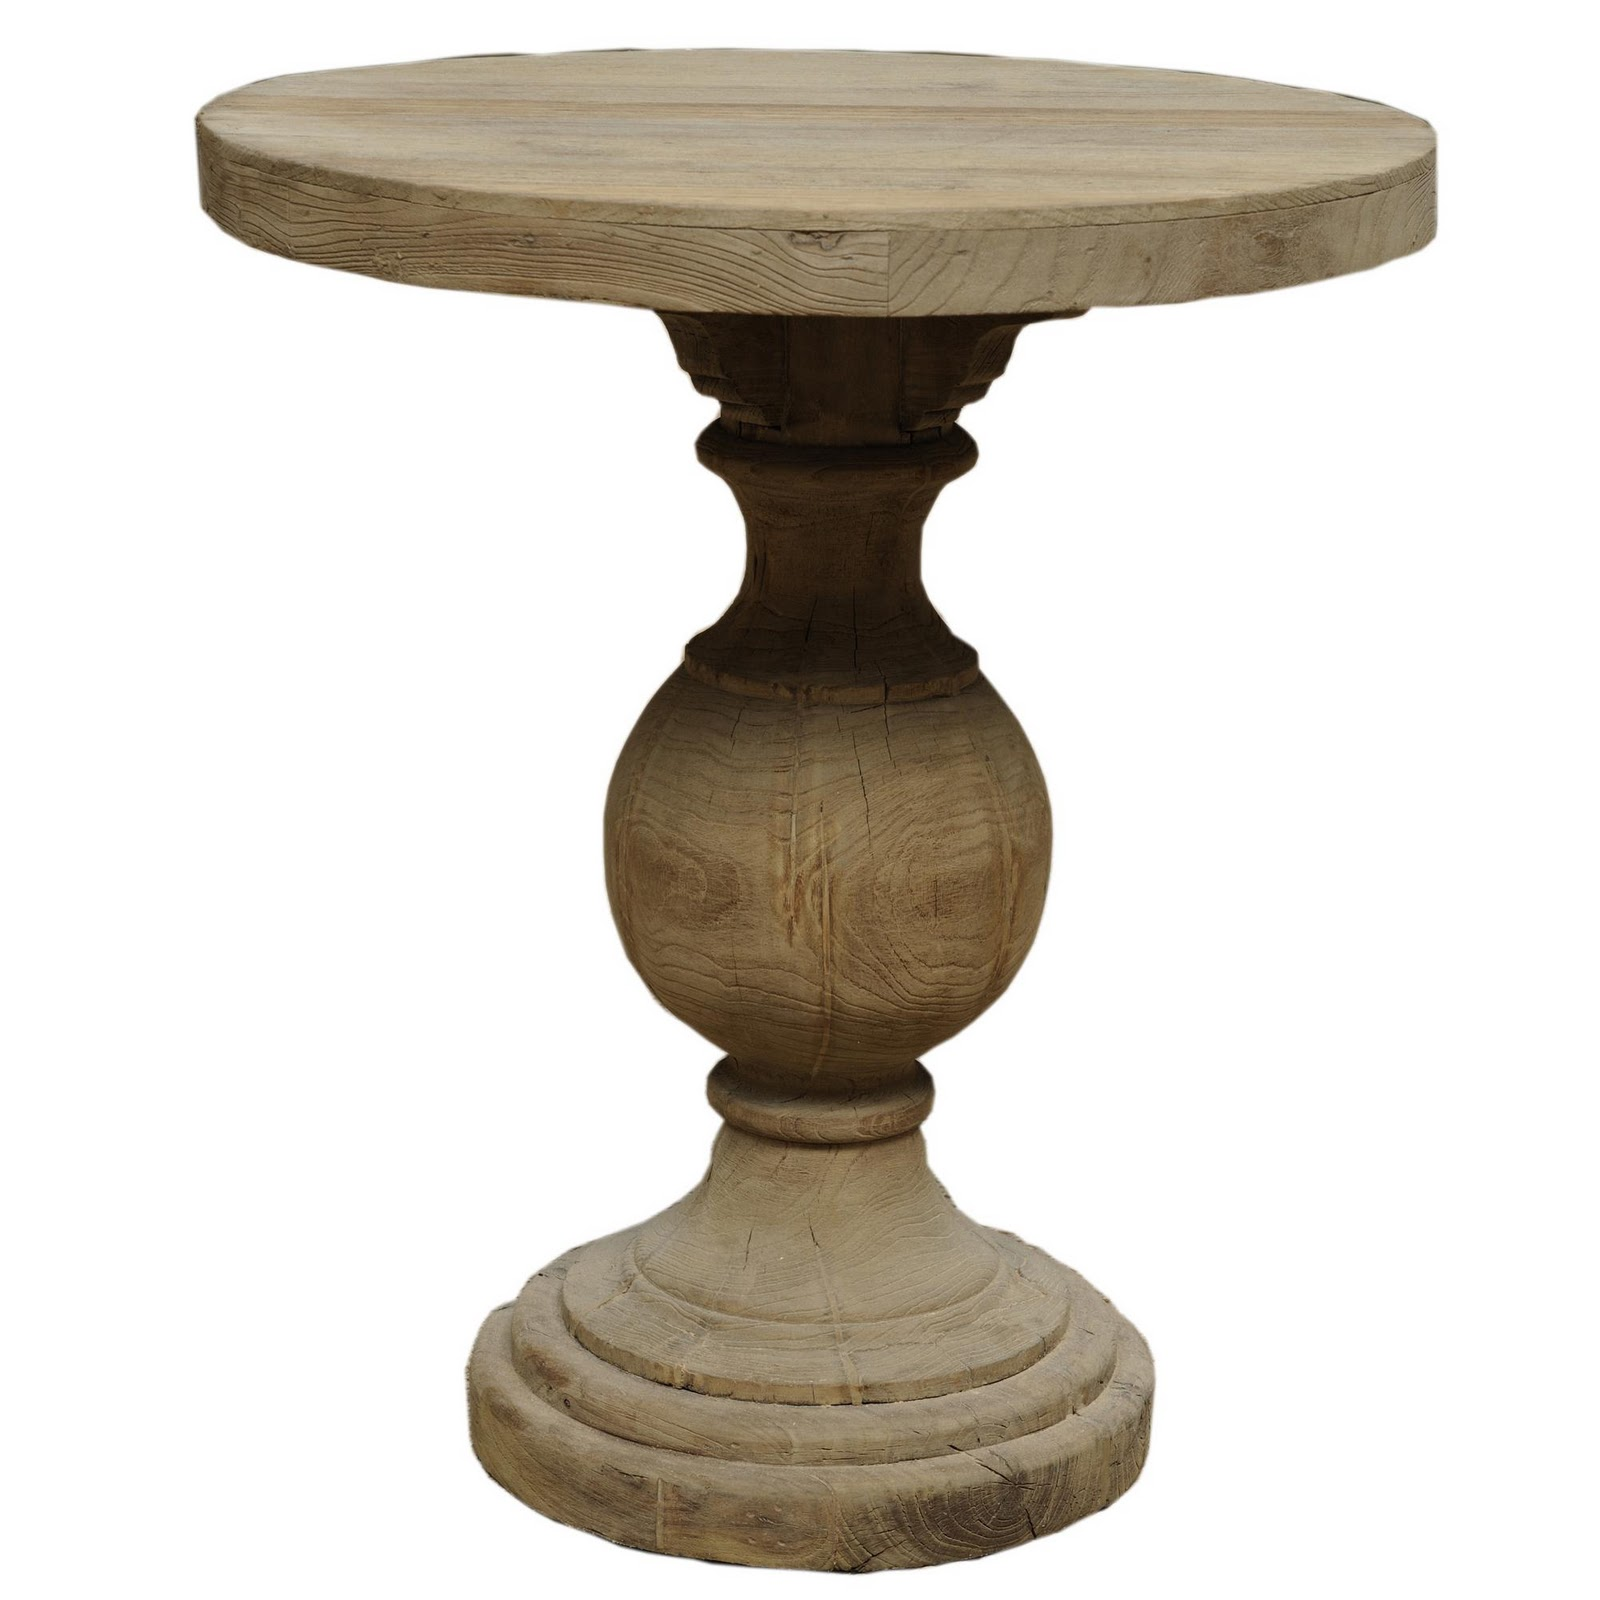 Impressive Wood Side Table Pedestal Base 1600 x 1600 · 185 kB · jpeg